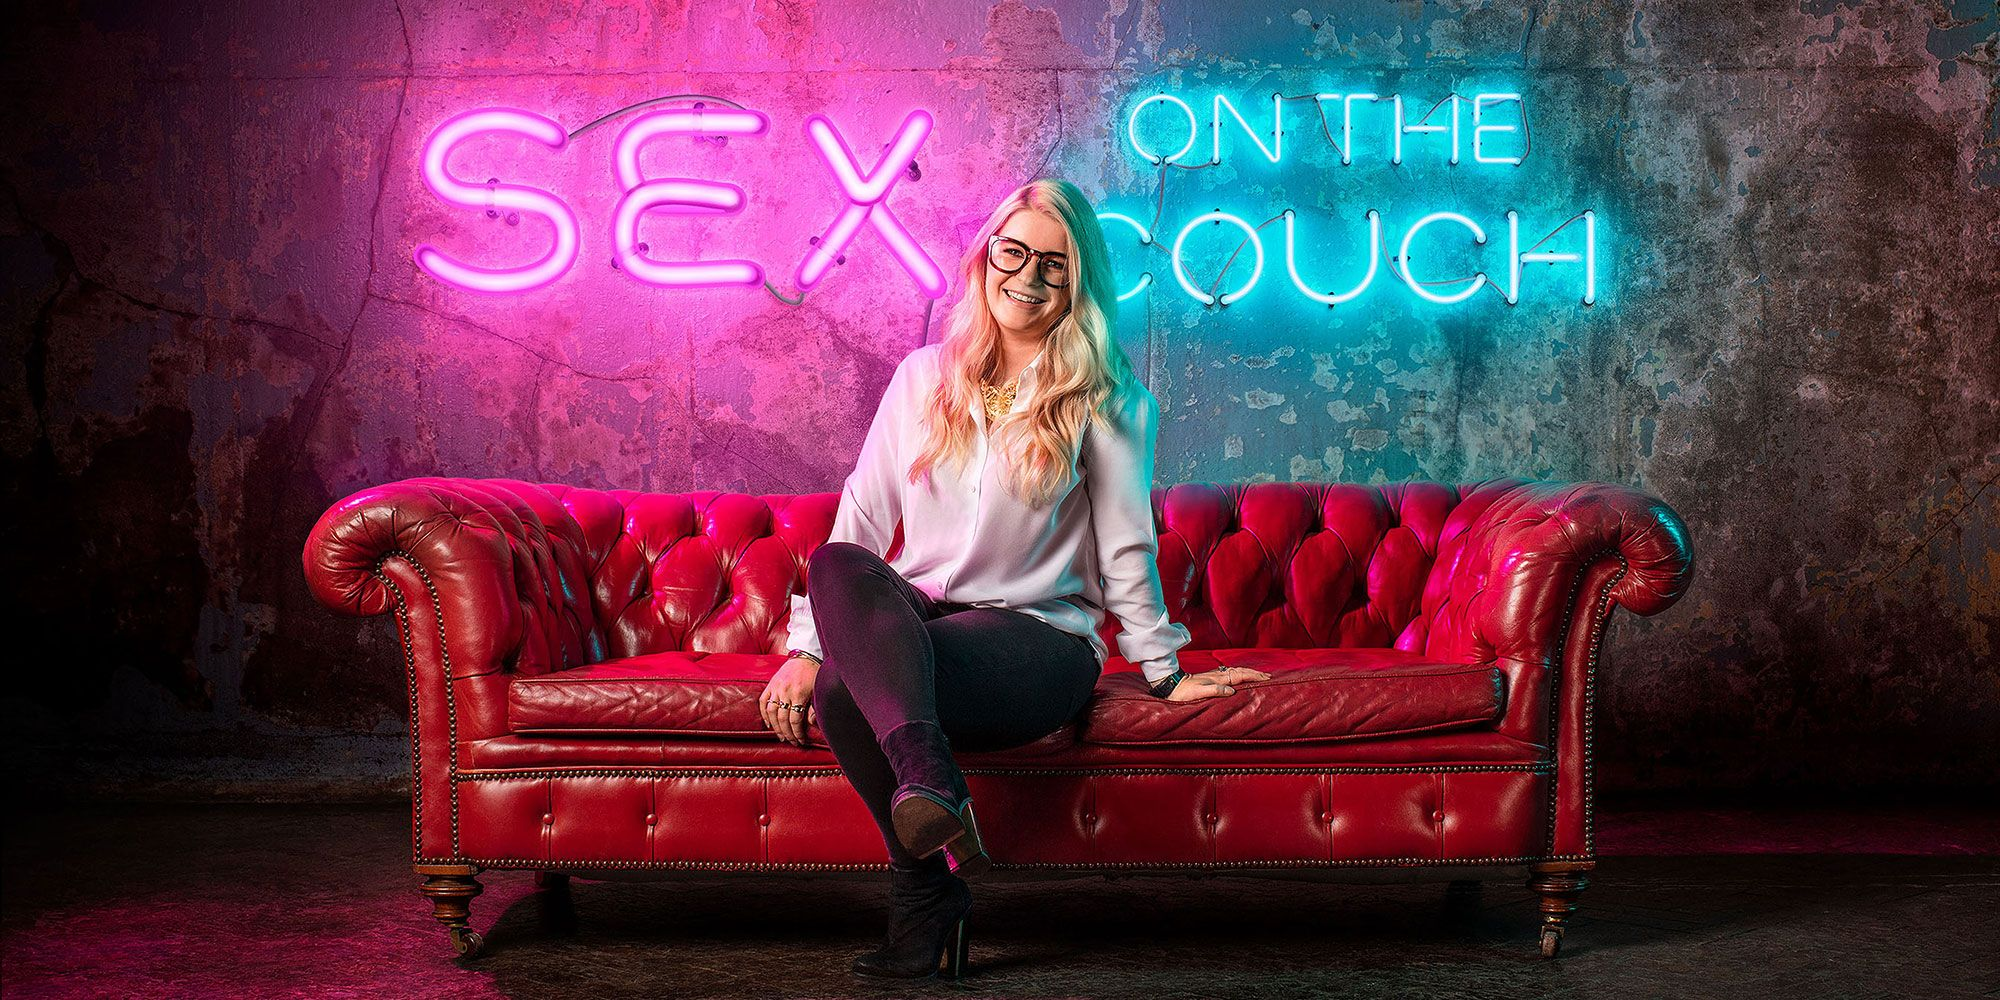 BBC Three's Sex on the Couch is here to teach us all so much about sex and relationships